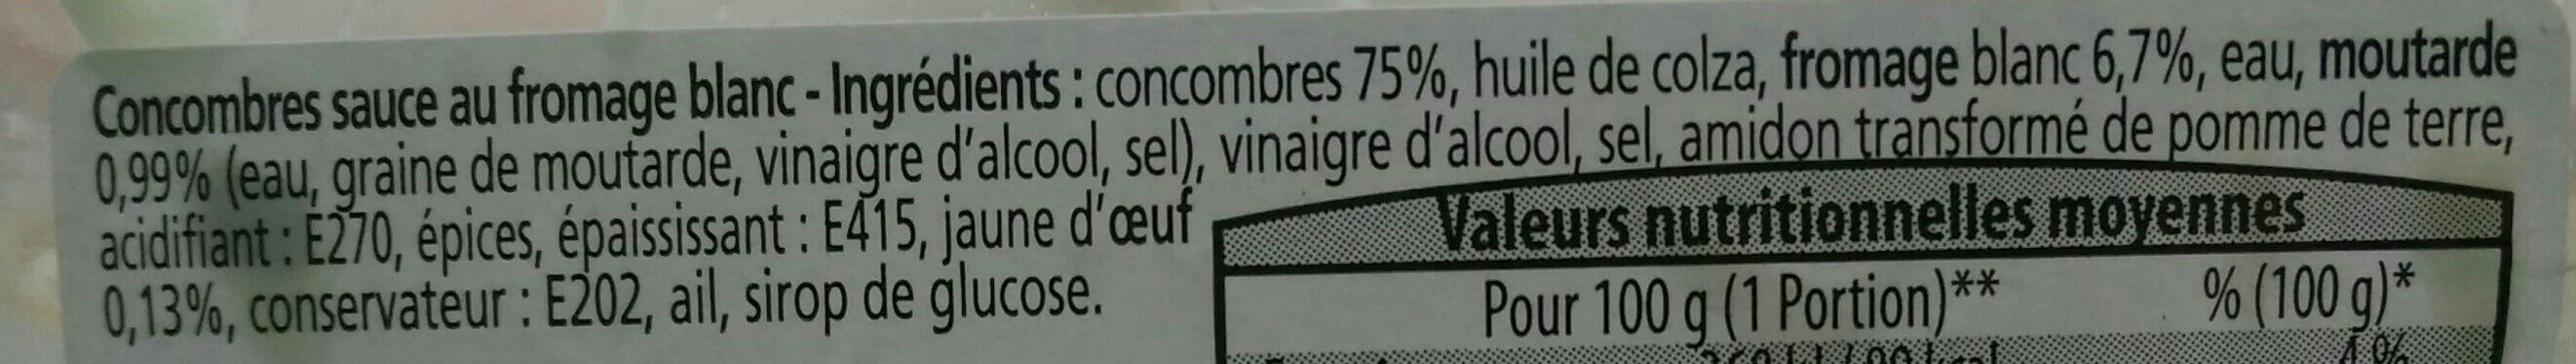 Concombres sauce au fromage blanc - Ingredients